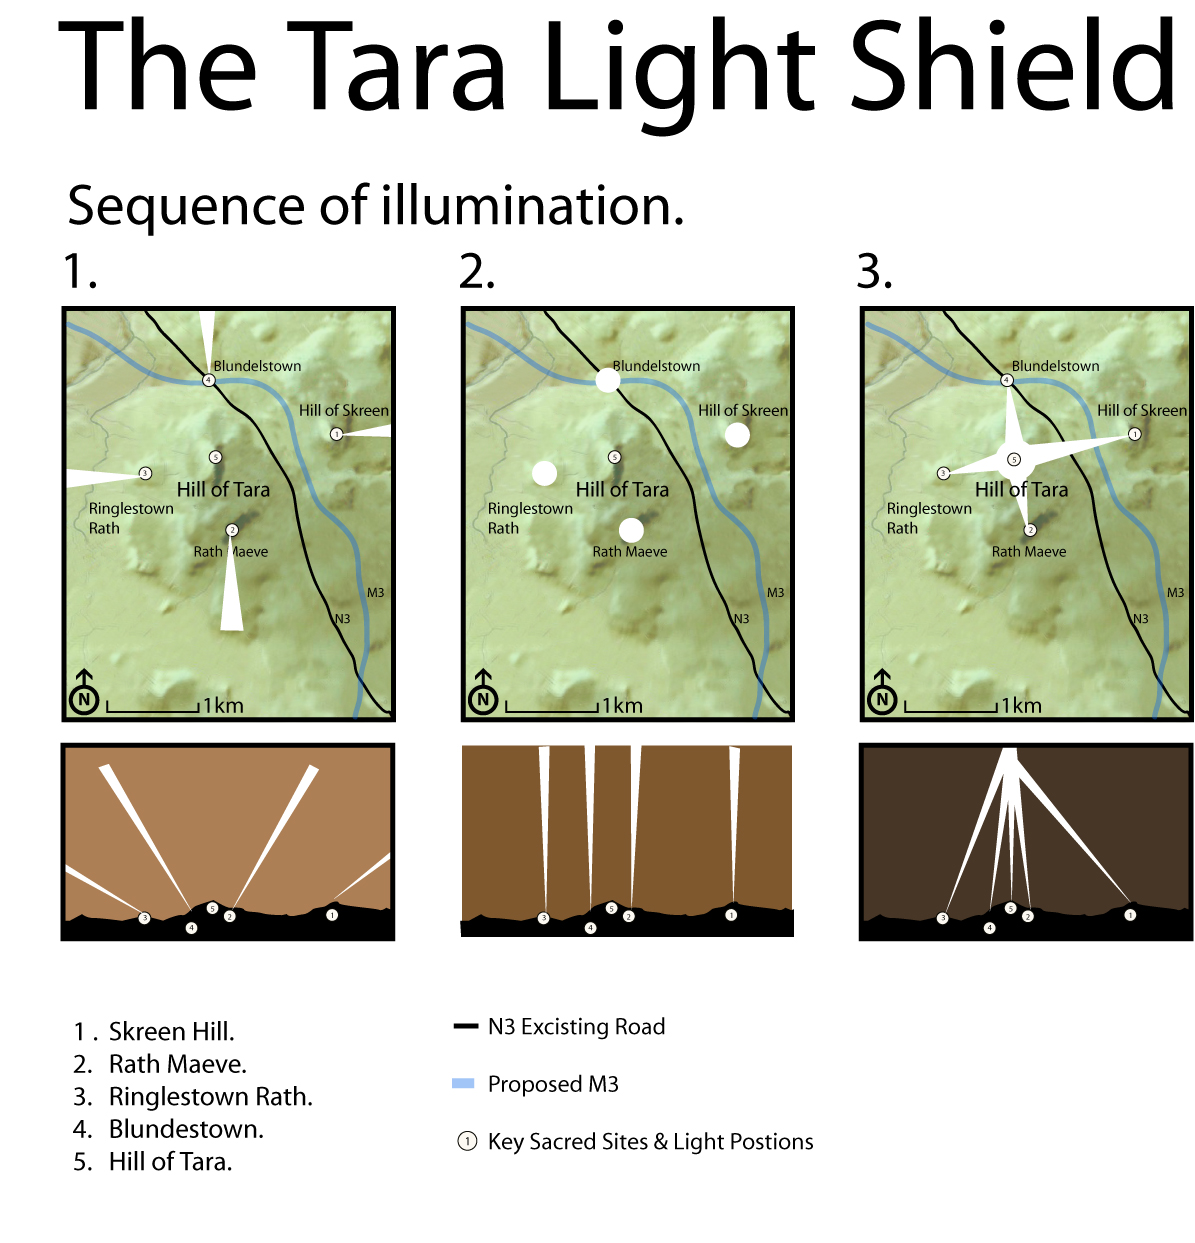 tara-light-shield1.jpg